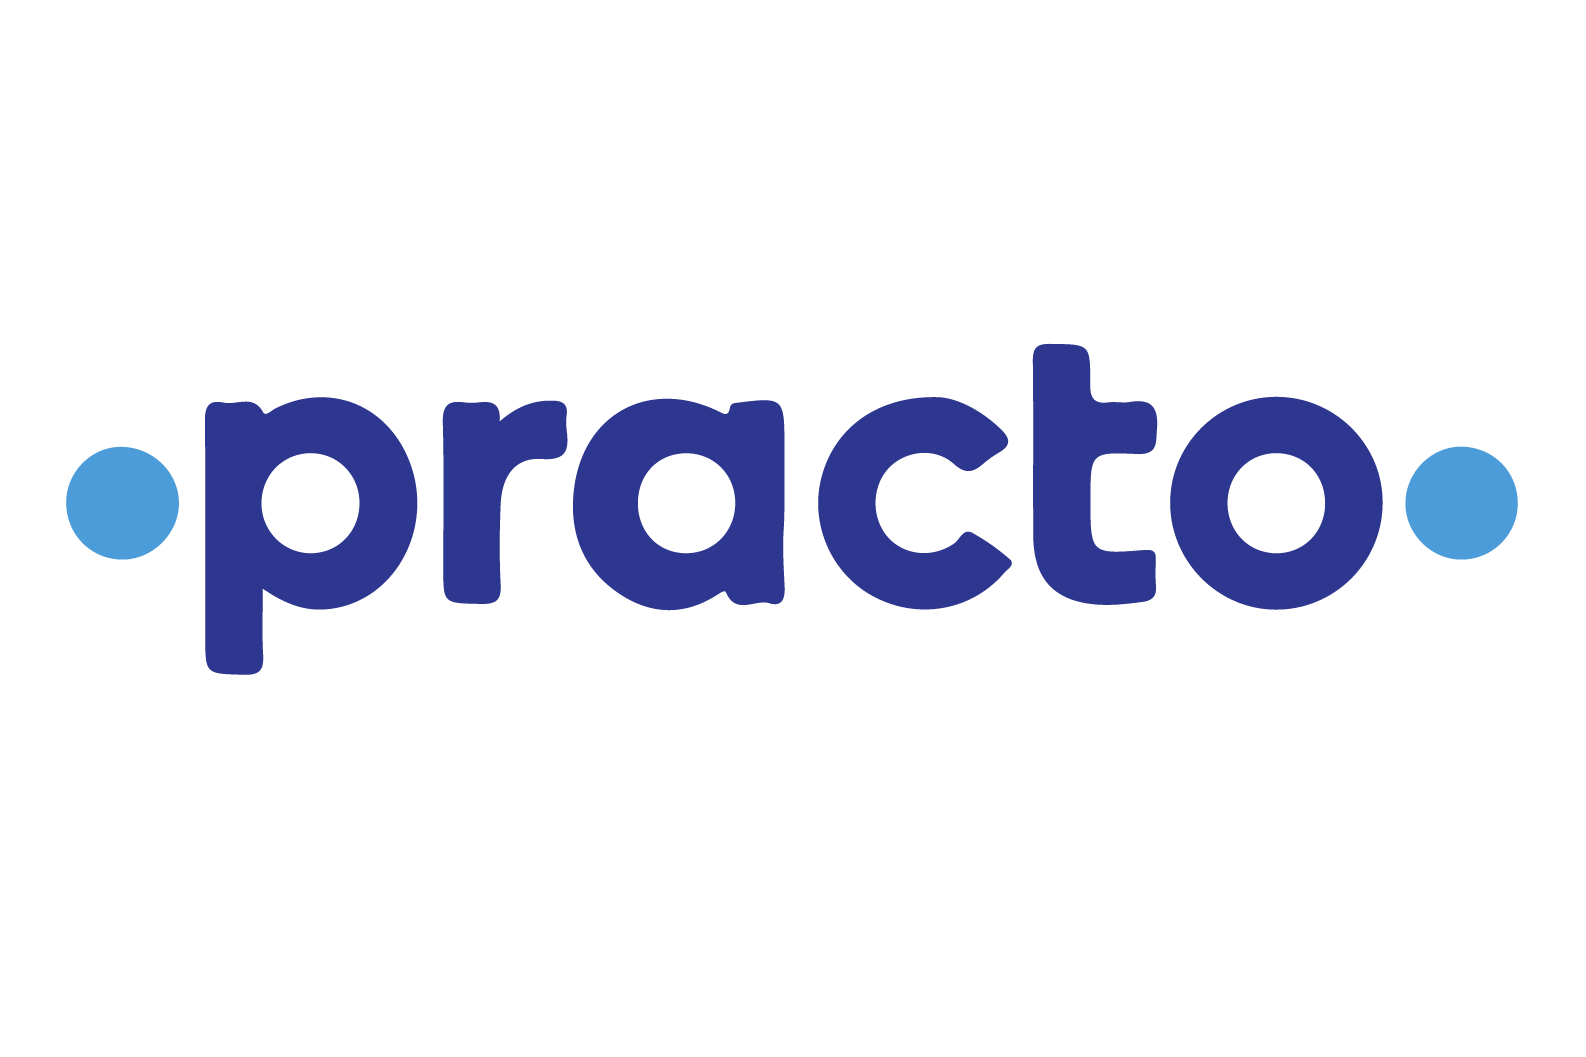 Review by Practo User